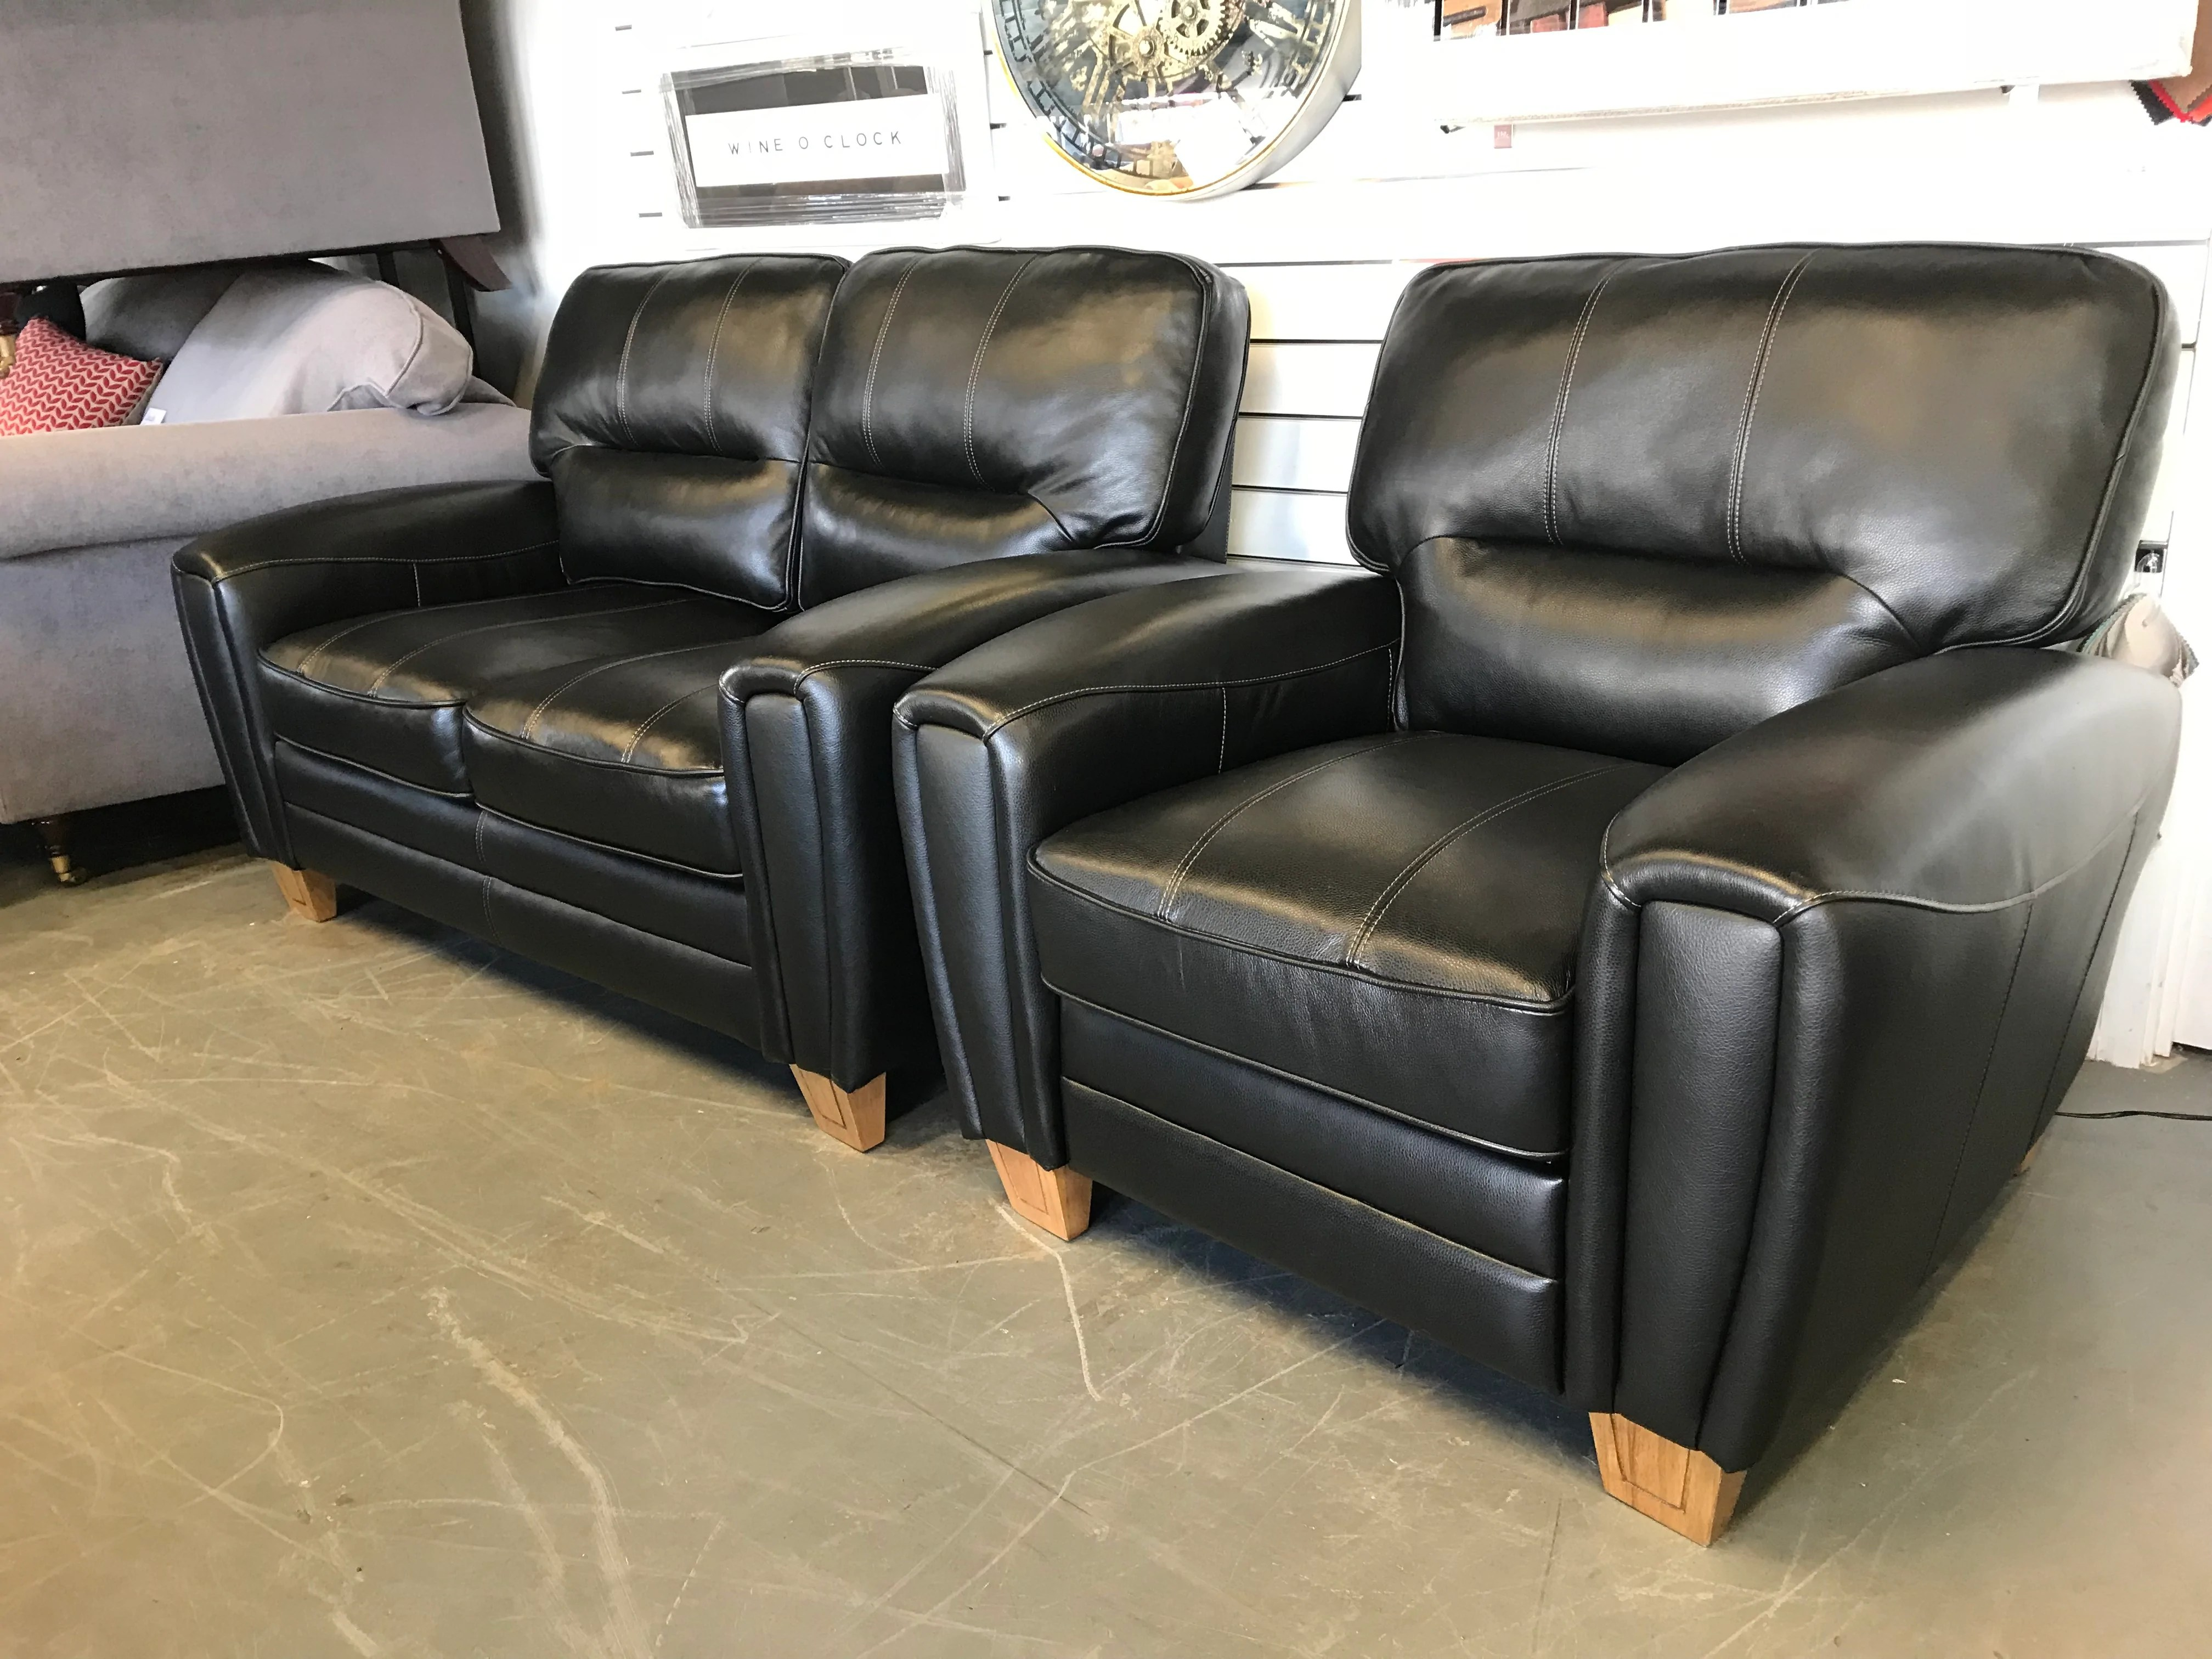 Ex Display Sofa A Designer Petite 2 Seater Sofa Matching Reclining Armchair In Black Leather